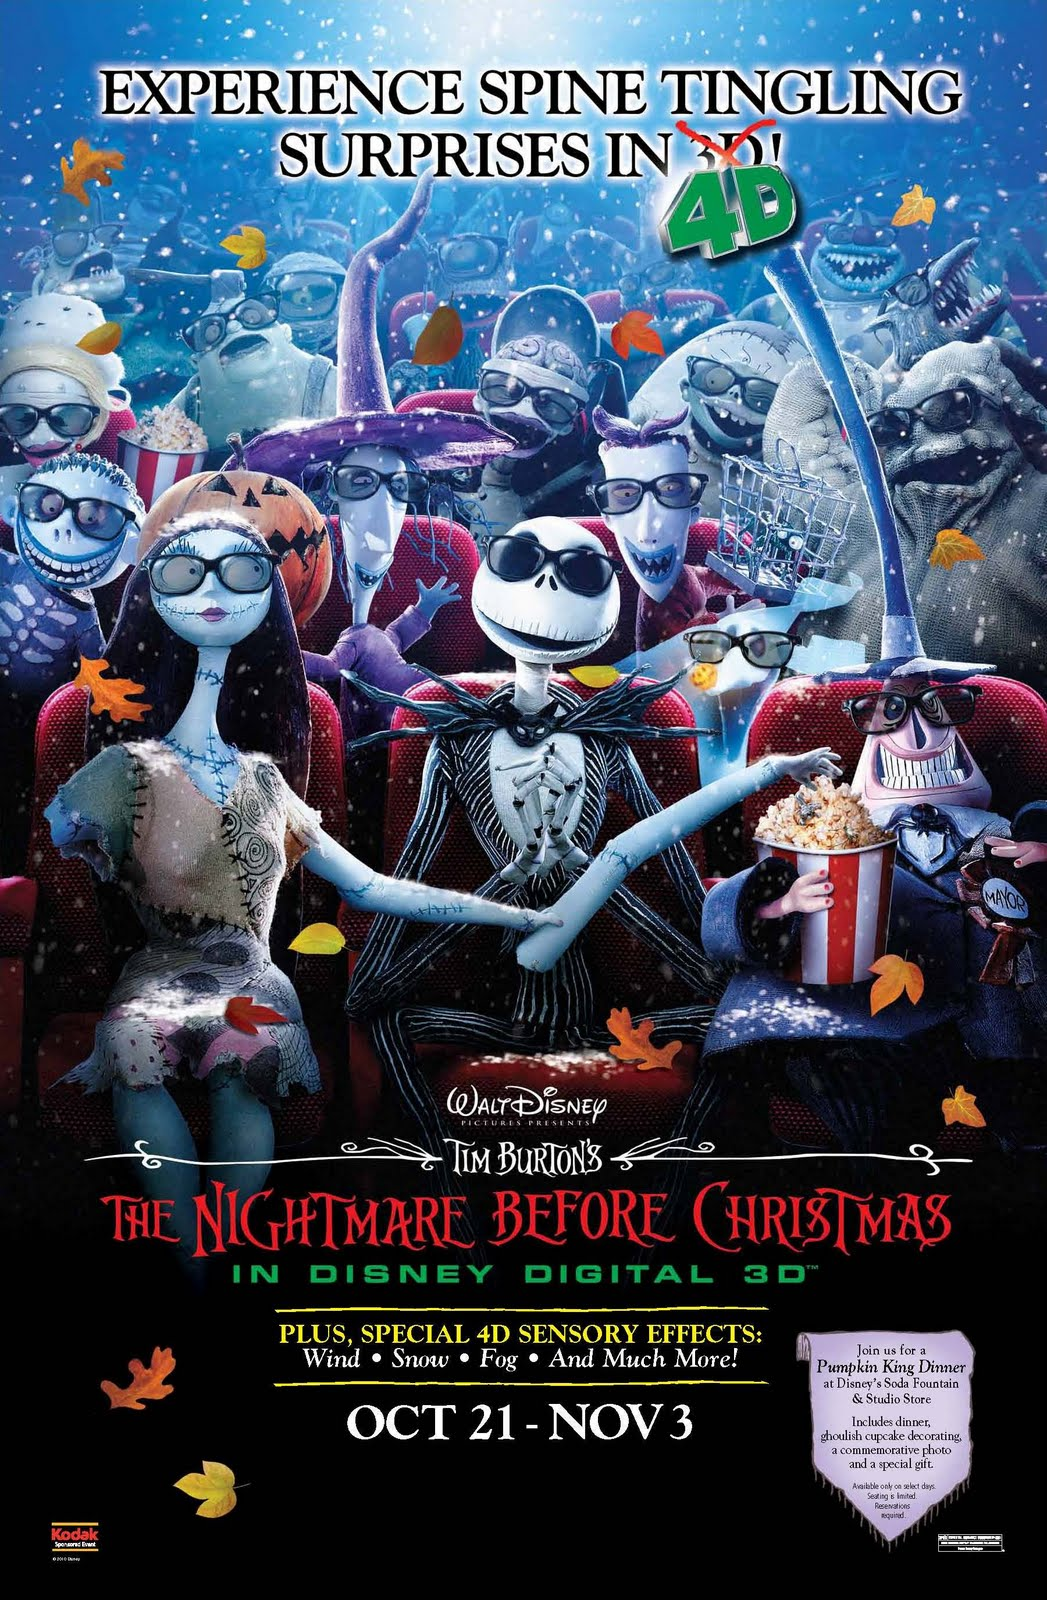 Procrastonaut: The Nightmare Before Christmas in 4D!